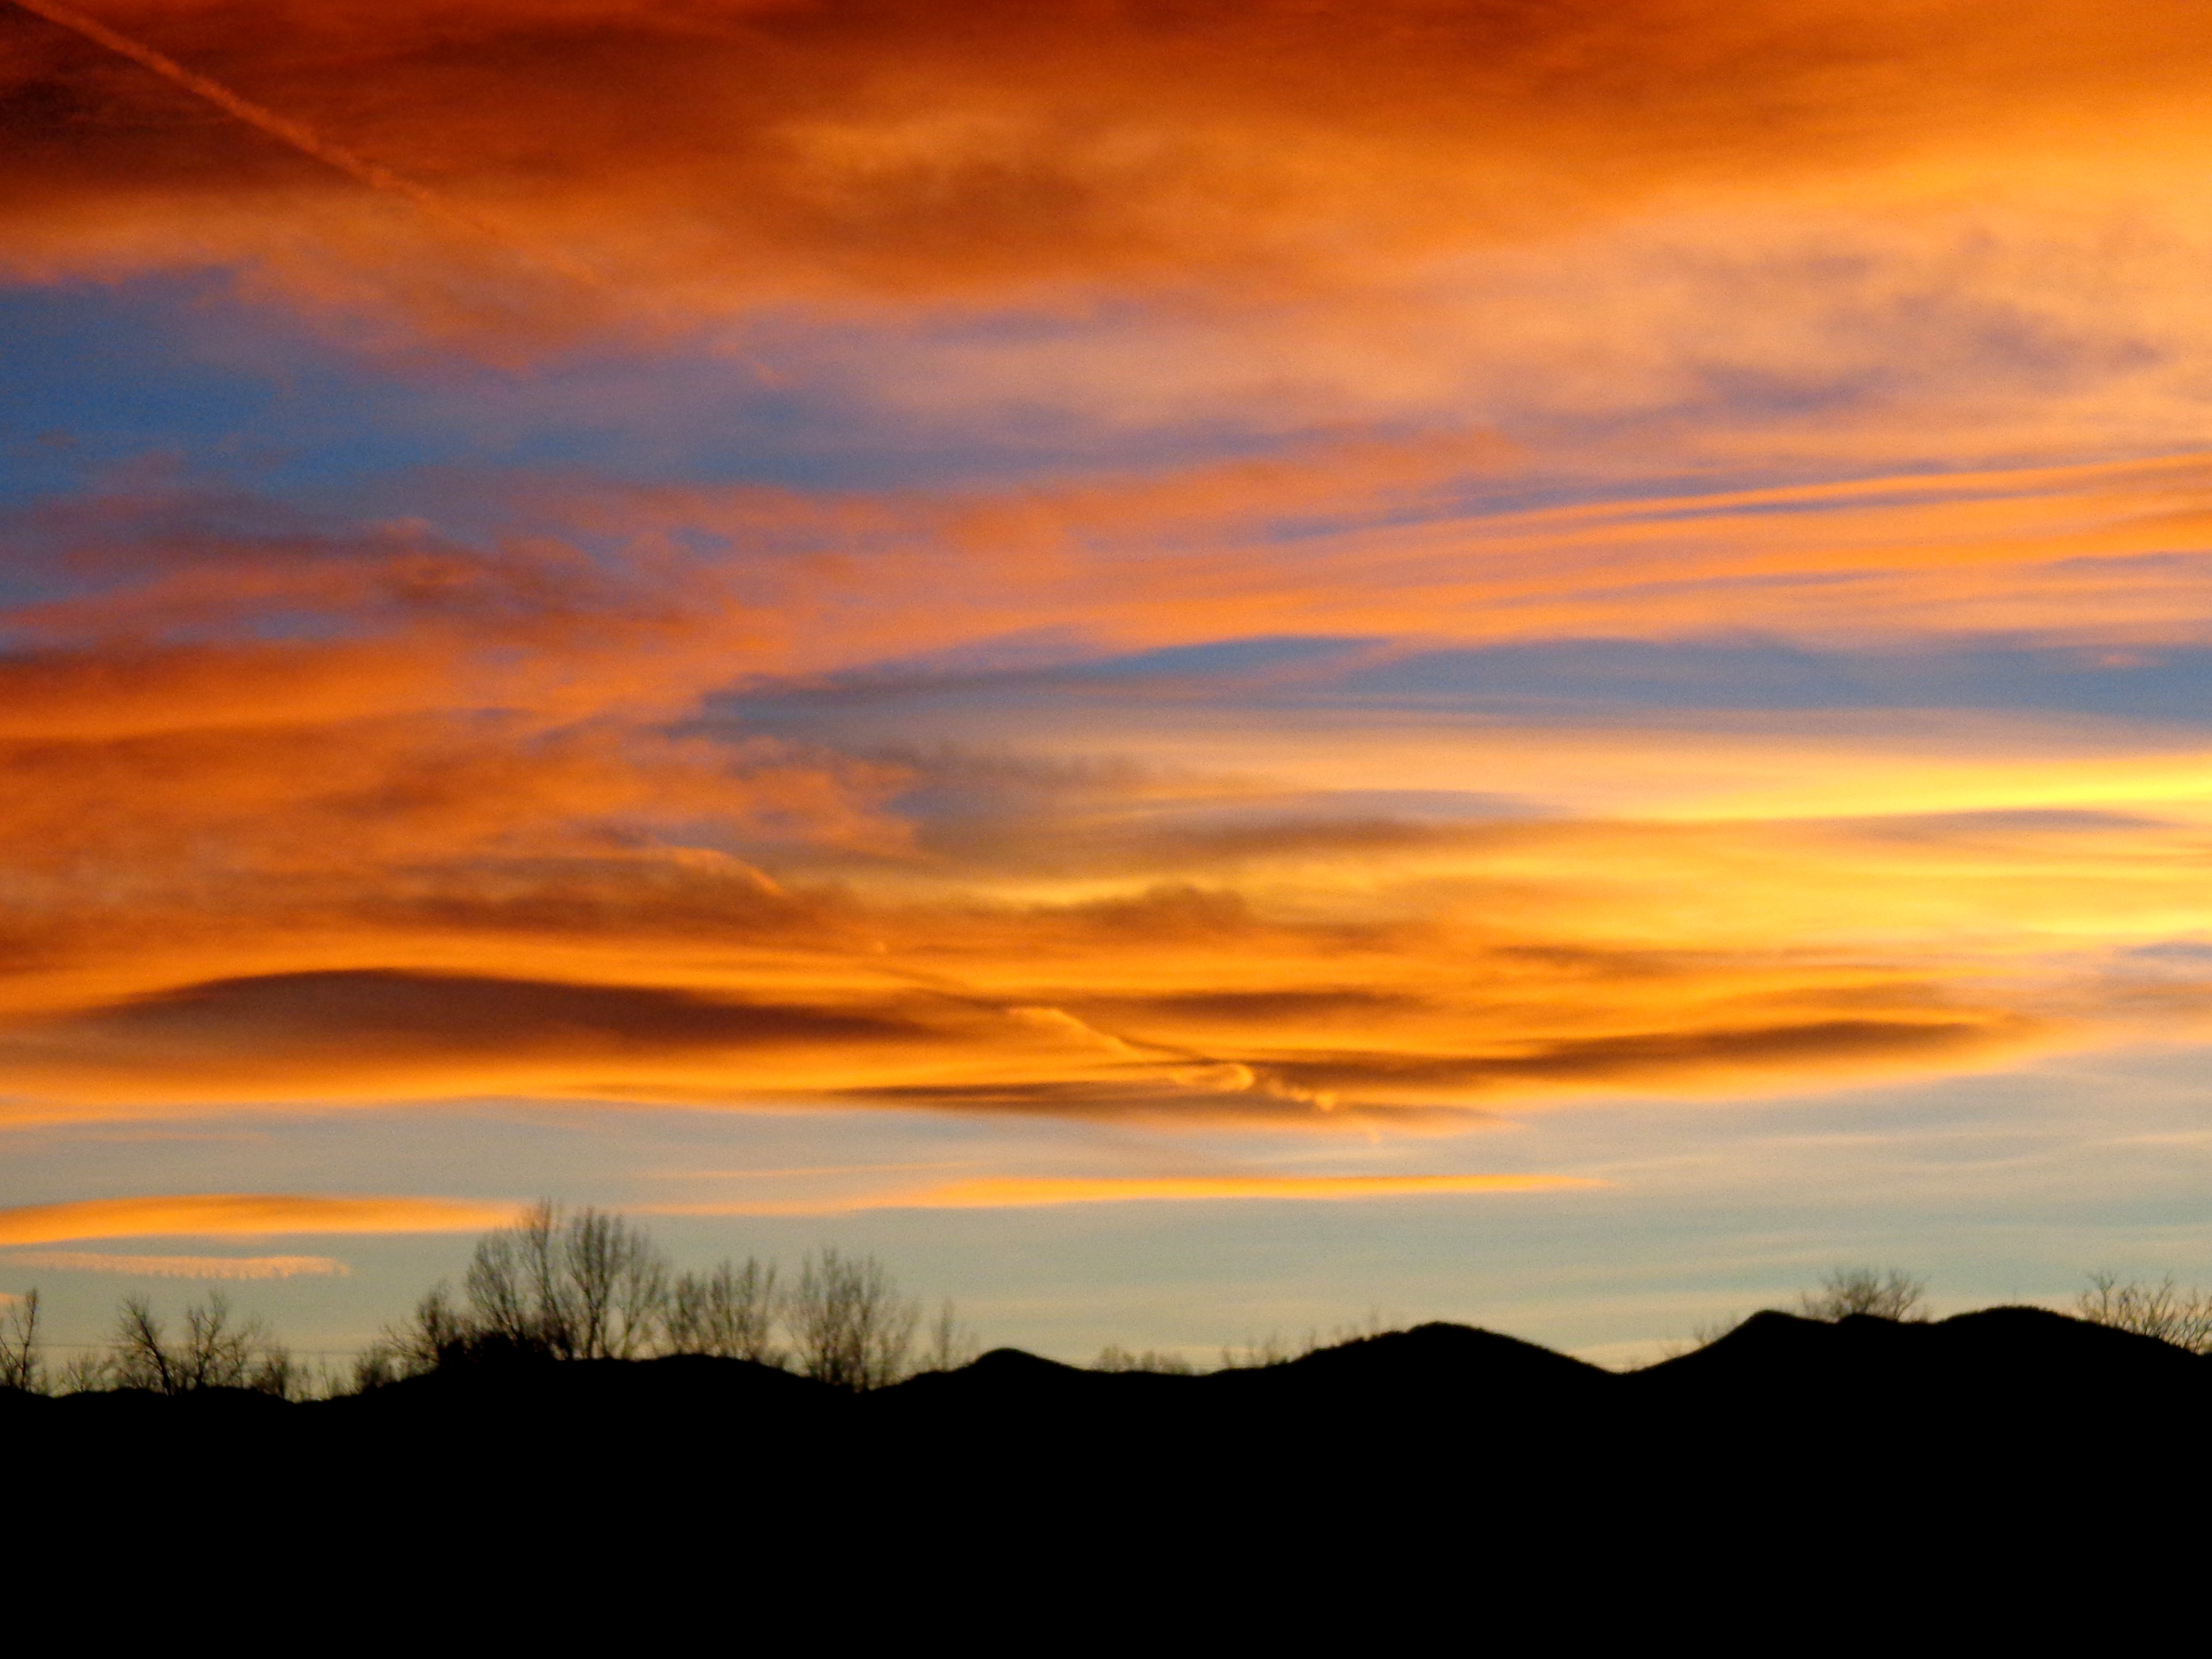 Orange and Blue Sunset over Rolling Hills Picture | Free Photograph ...